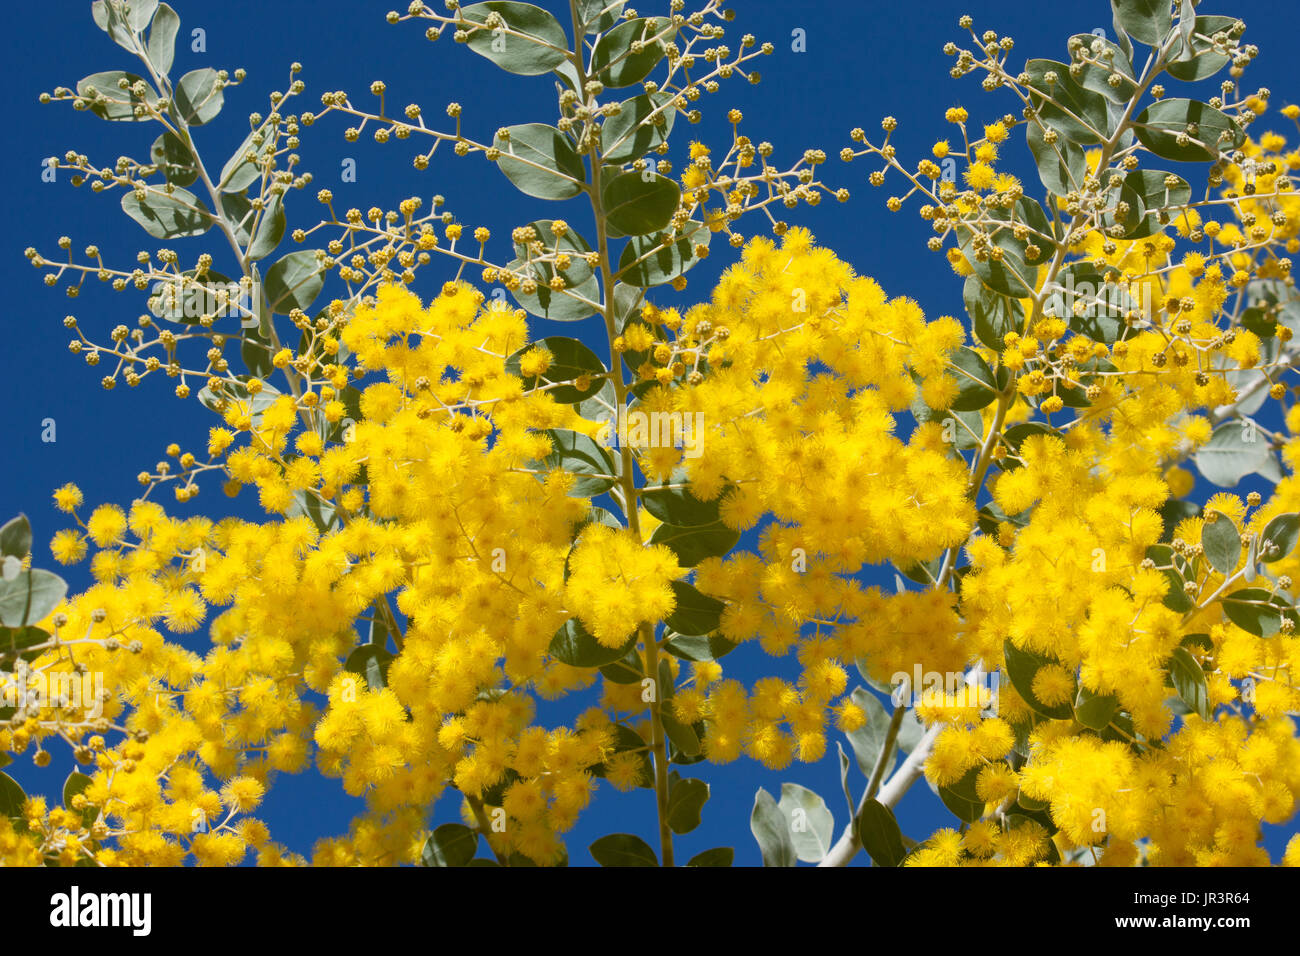 Blue leaf wattle acacia stock photos blue leaf wattle acacia stock native cootamundra wattle acacia yellow flowers on tree against blue sky stock image mightylinksfo